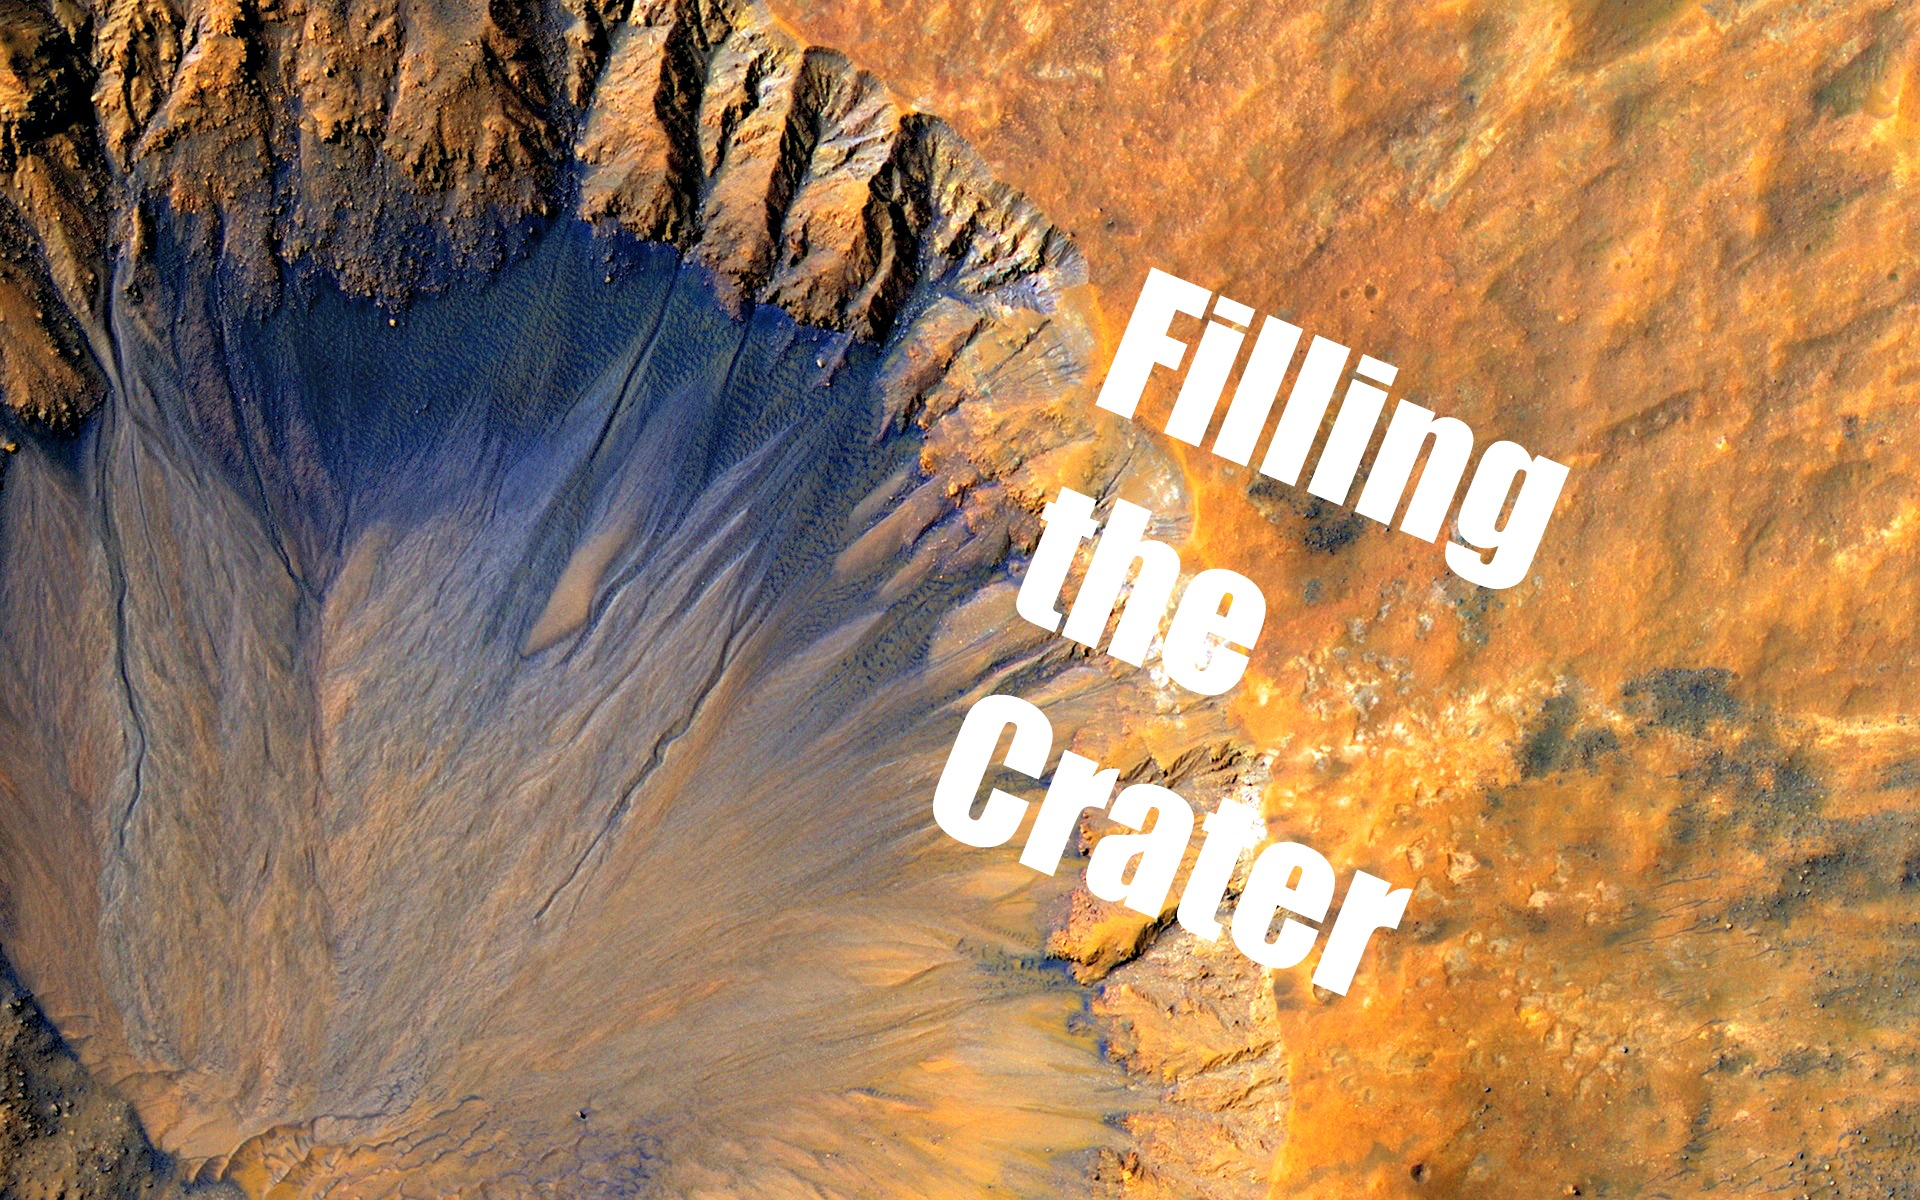 Filling the Crater